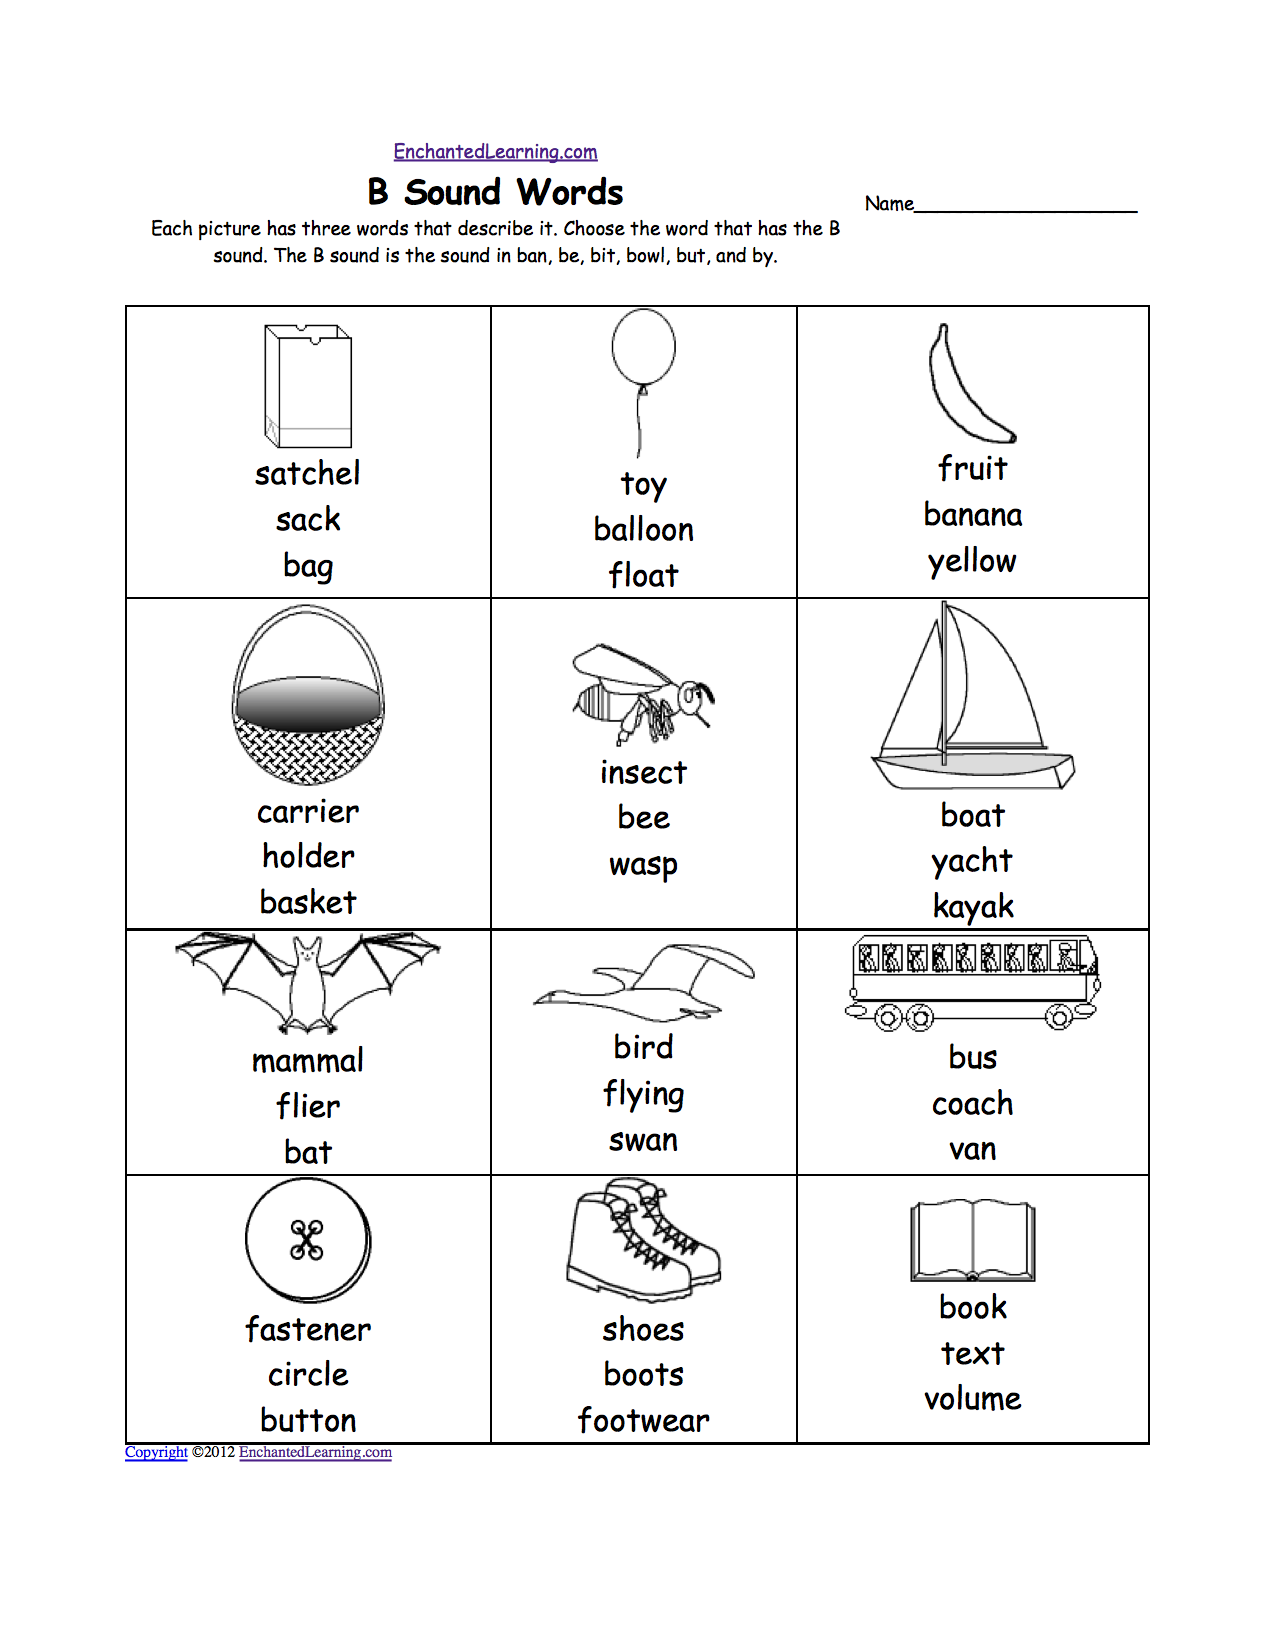 Aldiablosus  Scenic Phonics Worksheets Multiple Choice Worksheets To Print  With Lovely Quotbquot Sound Phonics Worksheet Multiple Choice Each Picture Has Three Words That Describe It Choose The Word That Has A Quotbquot Sound The Quotbquot Sound Is The Sound  With Easy On The Eye Literacy Worksheets Year  Also Fractions Quiz Worksheet In Addition Ruler Reading Worksheet And Human Body For Kids Worksheets As Well As Worksheets On Irony Additionally Ratio And Percentage Worksheets From Enchantedlearningcom With Aldiablosus  Lovely Phonics Worksheets Multiple Choice Worksheets To Print  With Easy On The Eye Quotbquot Sound Phonics Worksheet Multiple Choice Each Picture Has Three Words That Describe It Choose The Word That Has A Quotbquot Sound The Quotbquot Sound Is The Sound  And Scenic Literacy Worksheets Year  Also Fractions Quiz Worksheet In Addition Ruler Reading Worksheet From Enchantedlearningcom